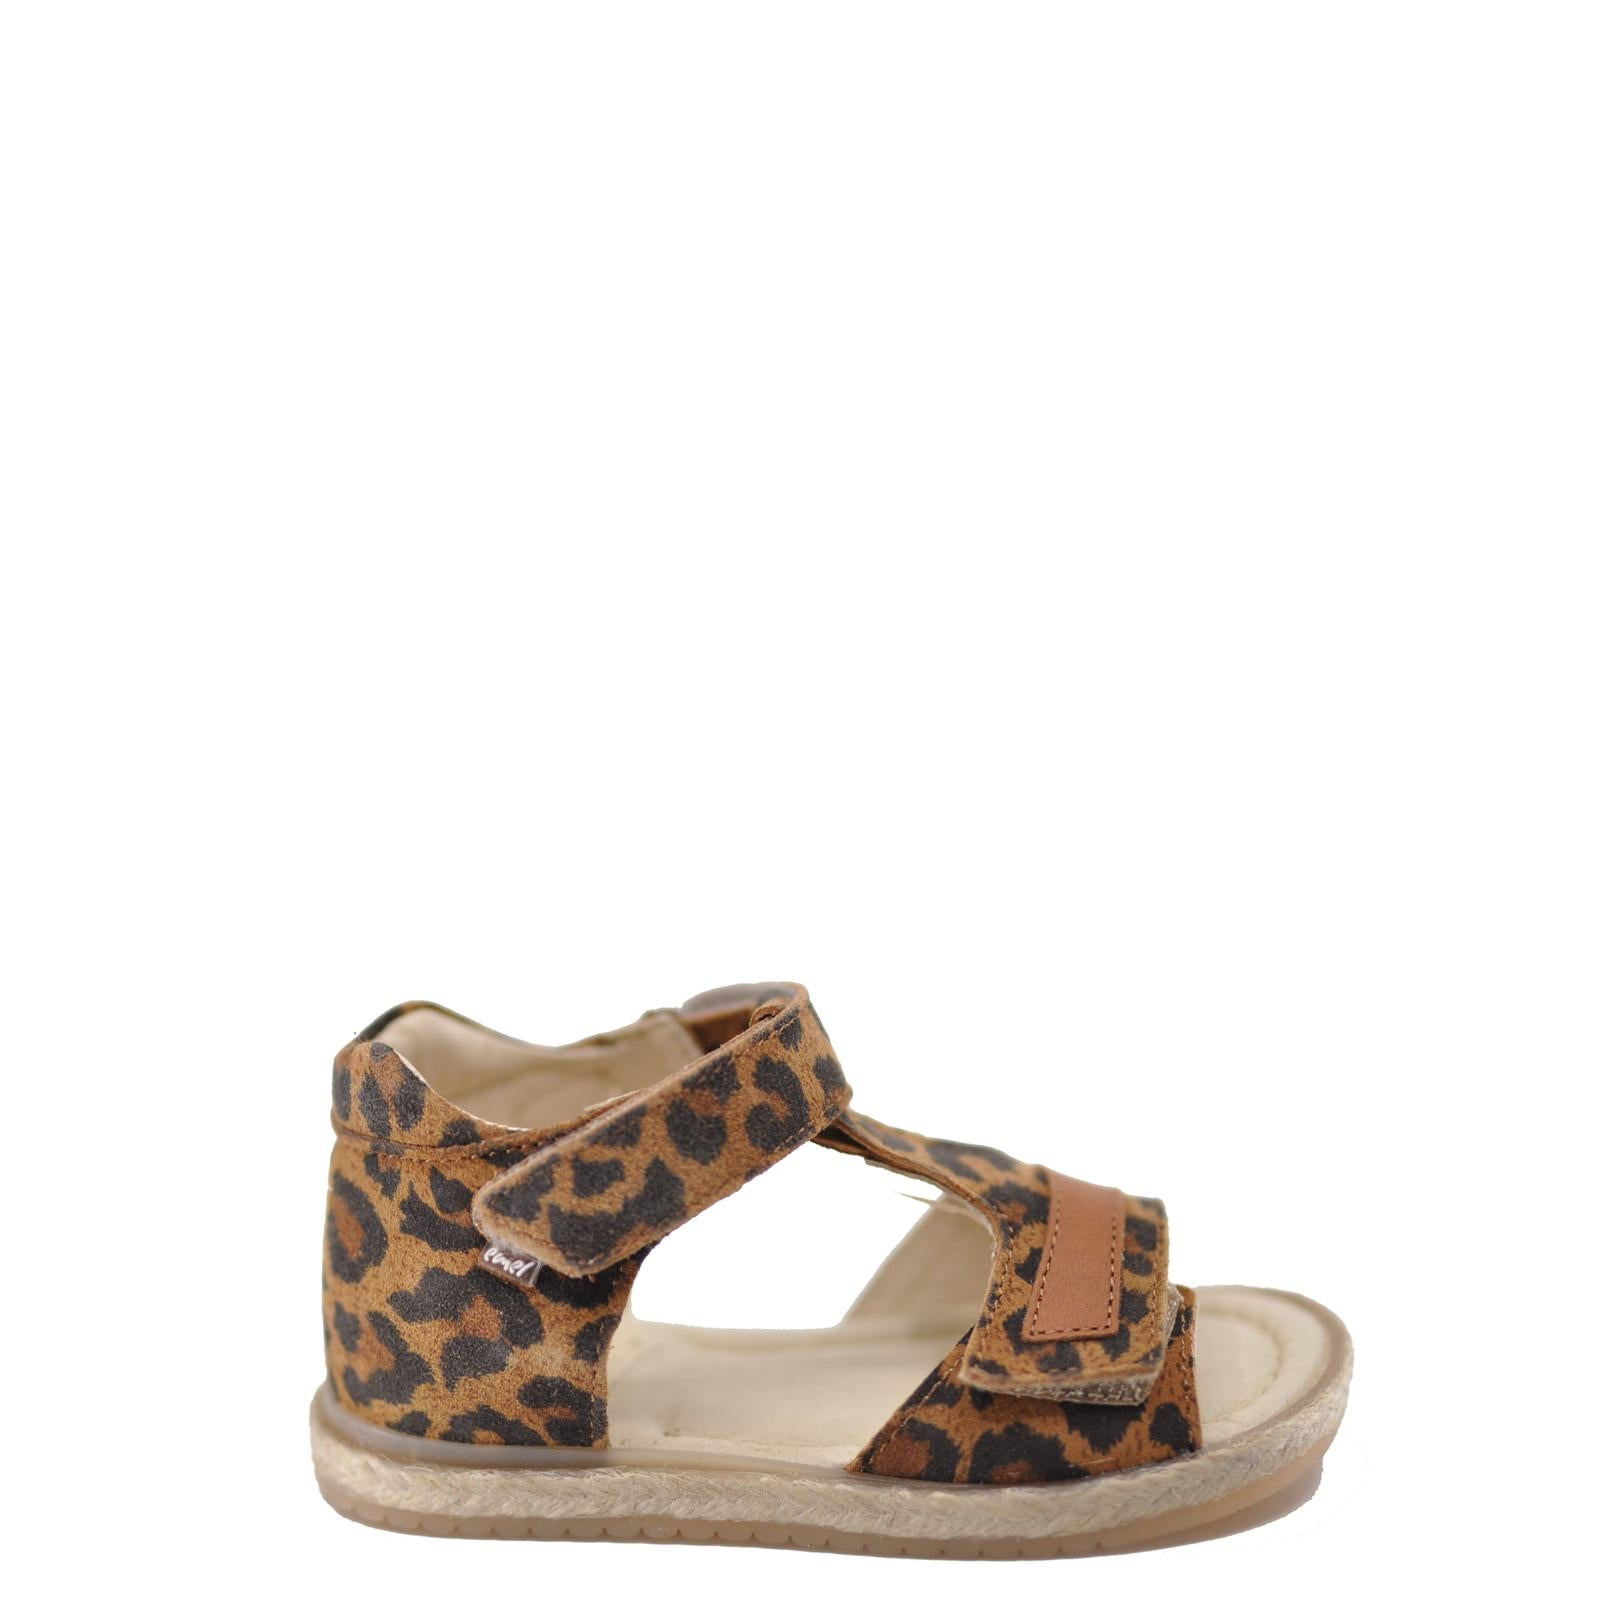 Emel Luggage Cheeta Velcro Sandal-Tassel Children Shoes